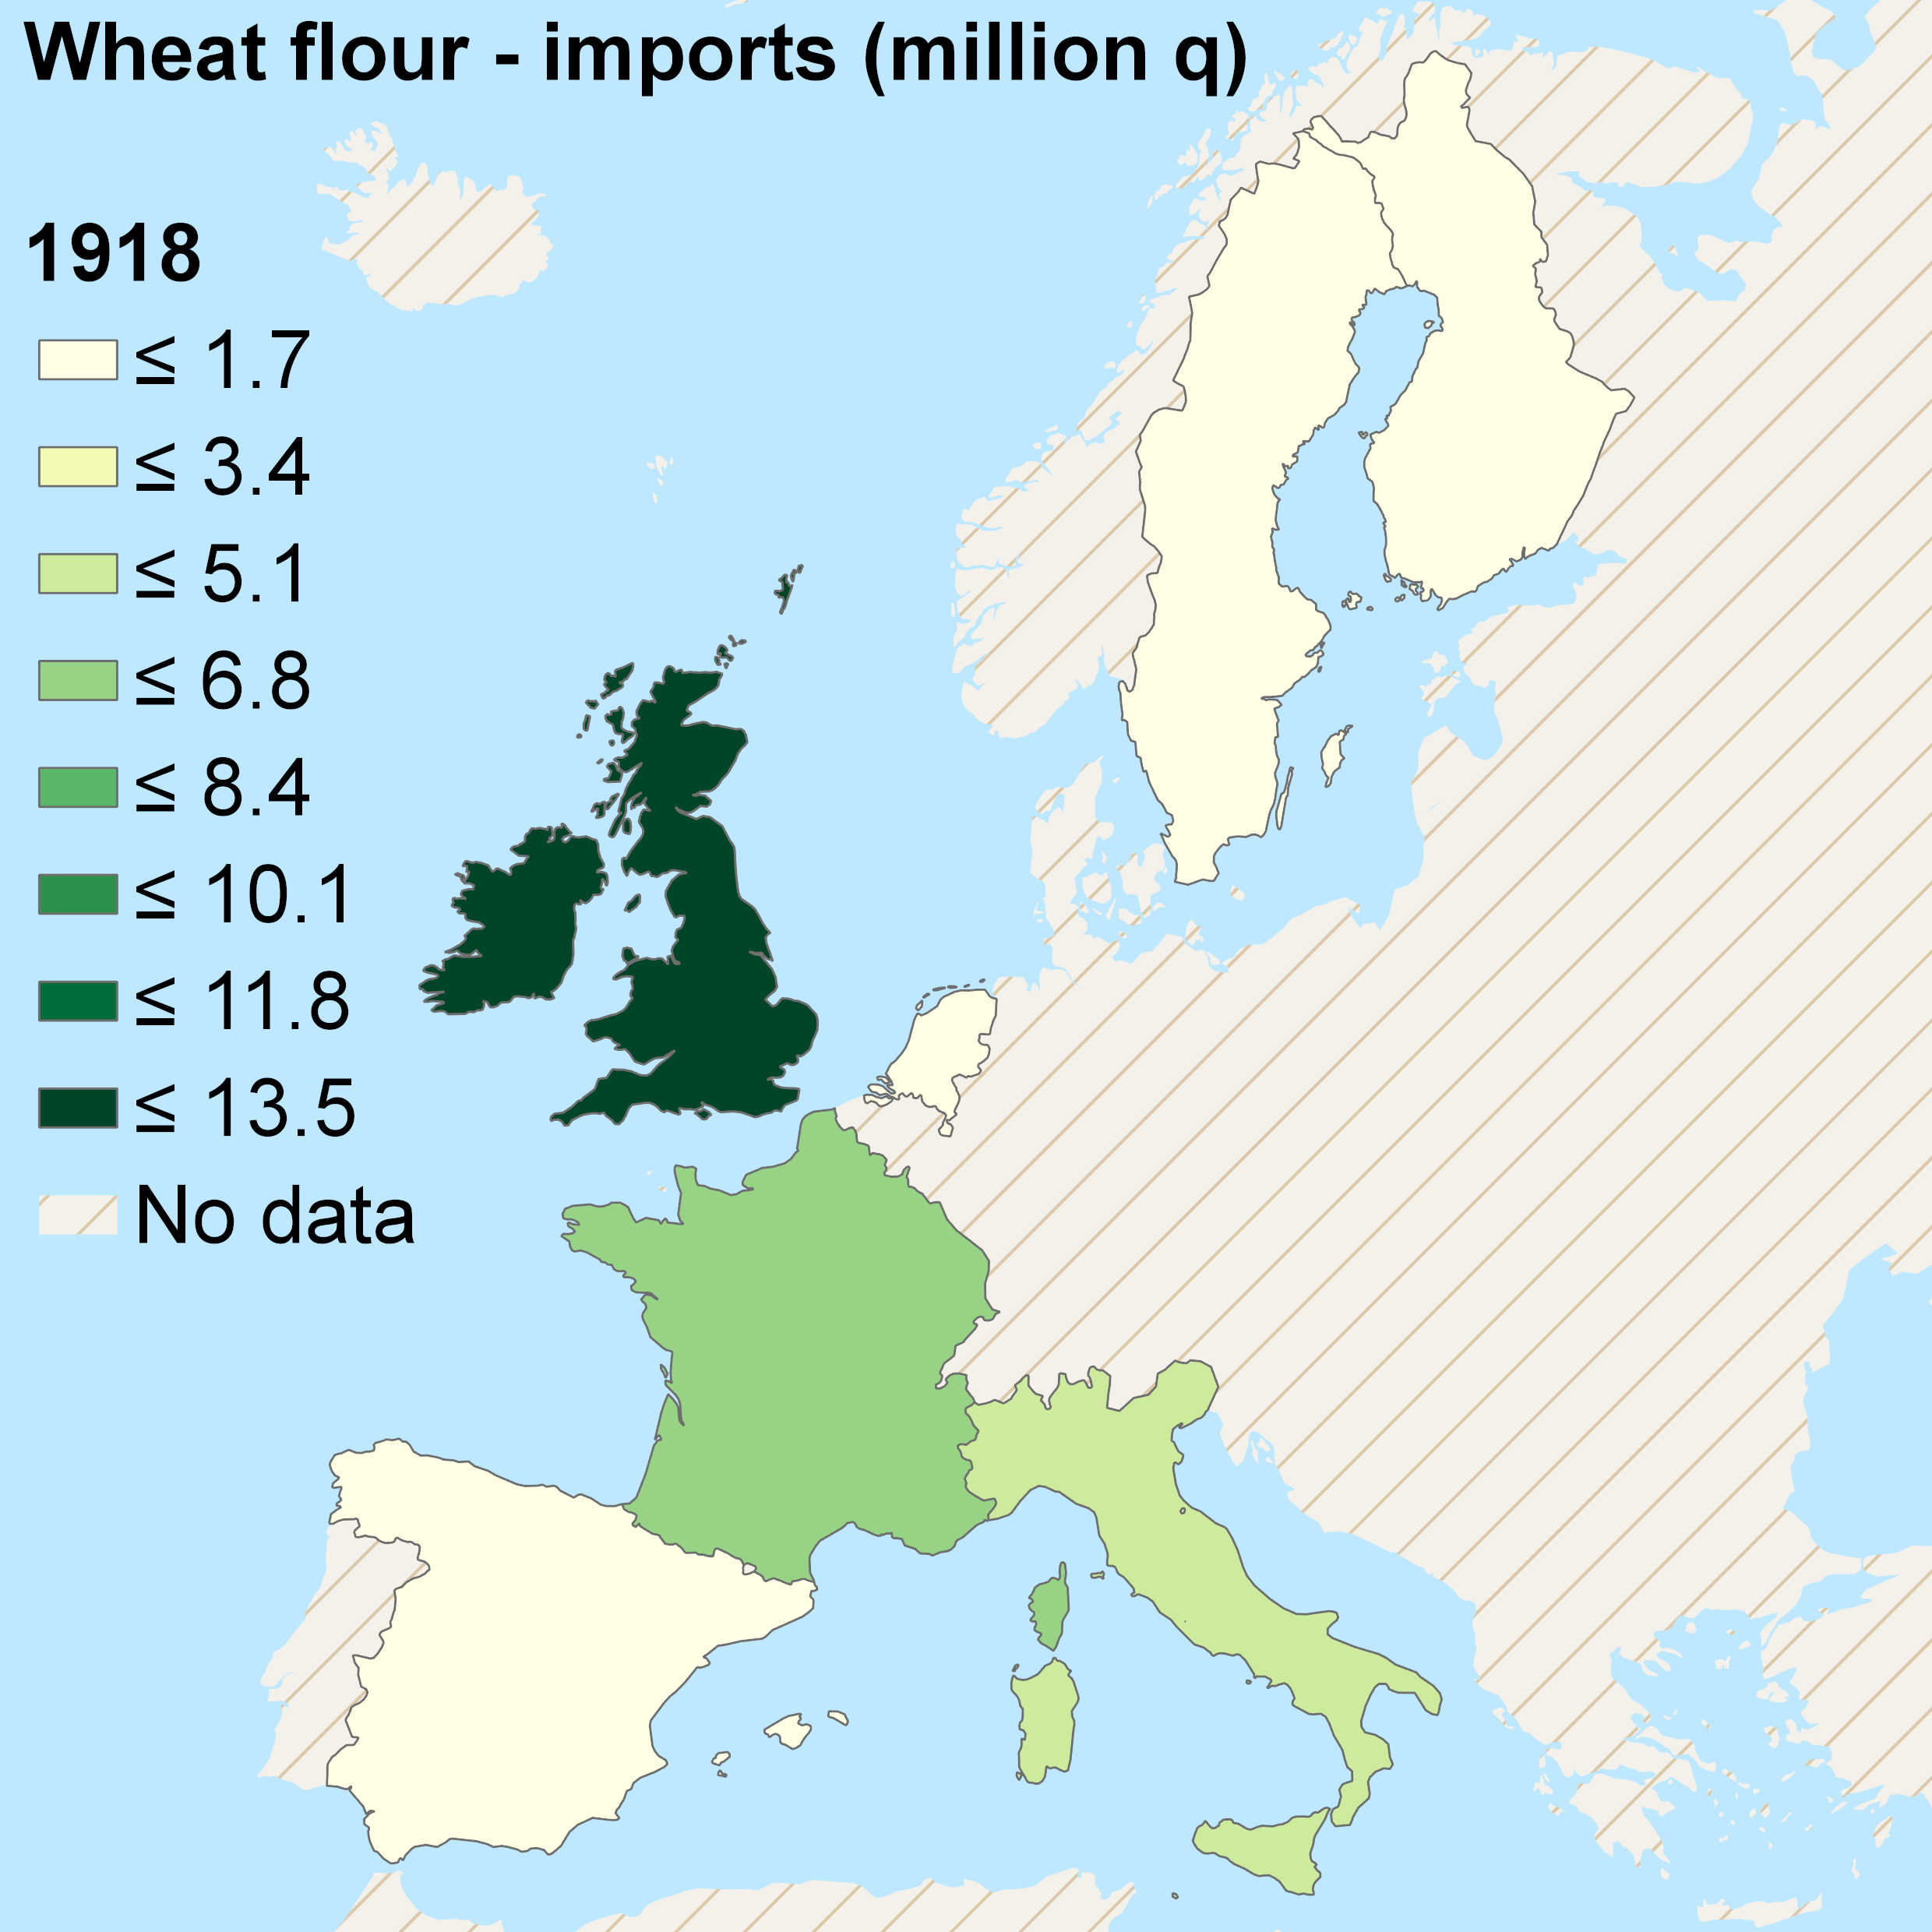 wheat-flour-imports-1918-v2